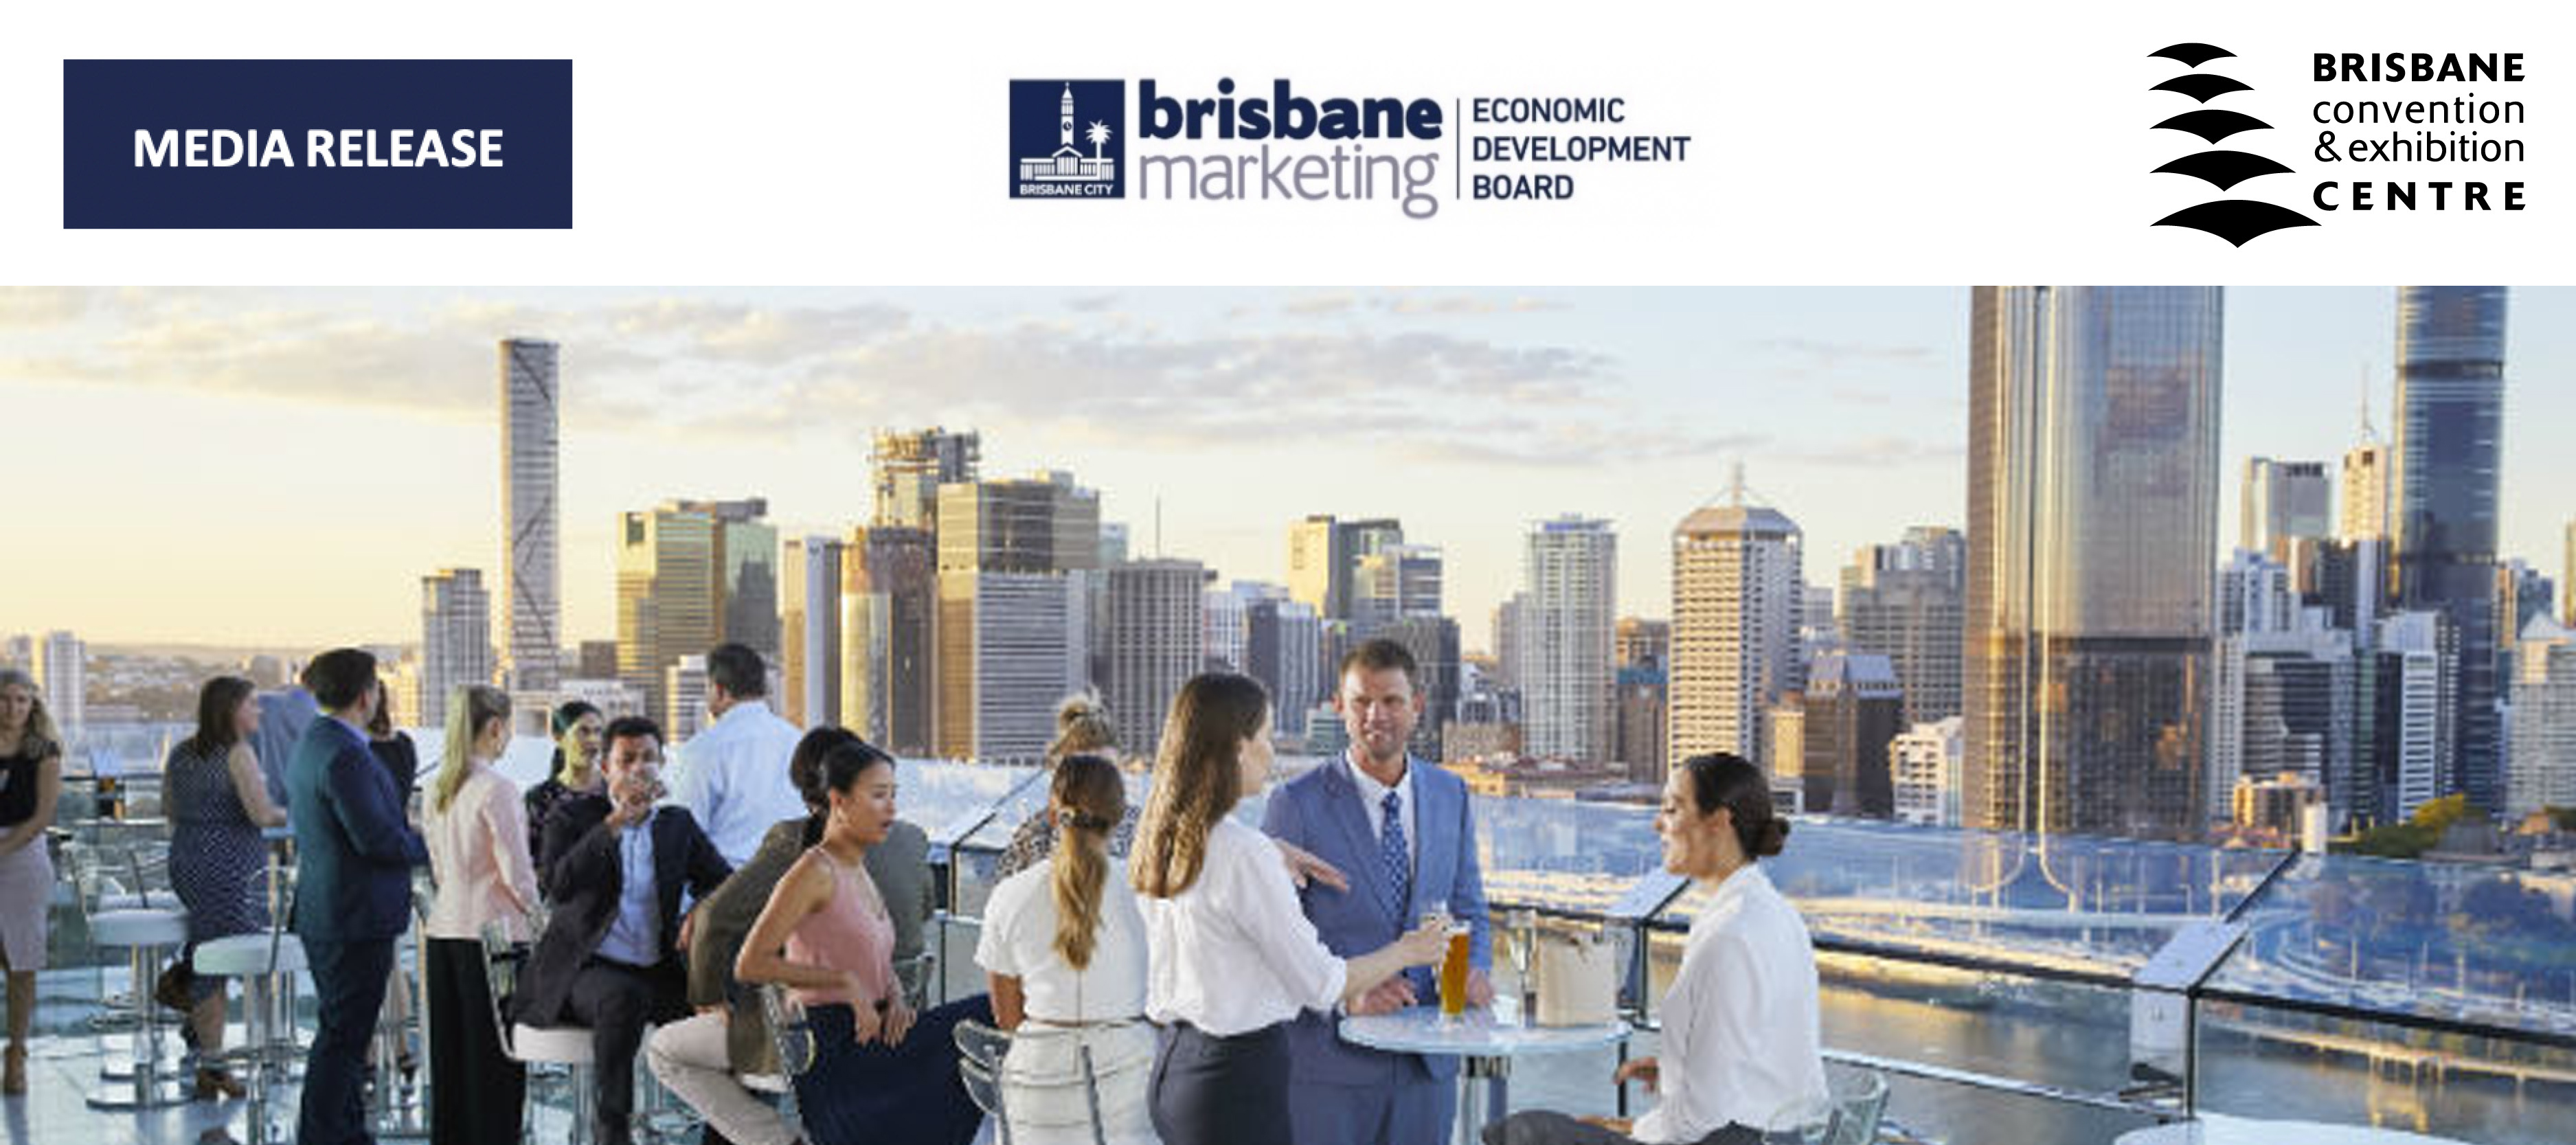 Spring delivers $29 million conference boon for Brisbane